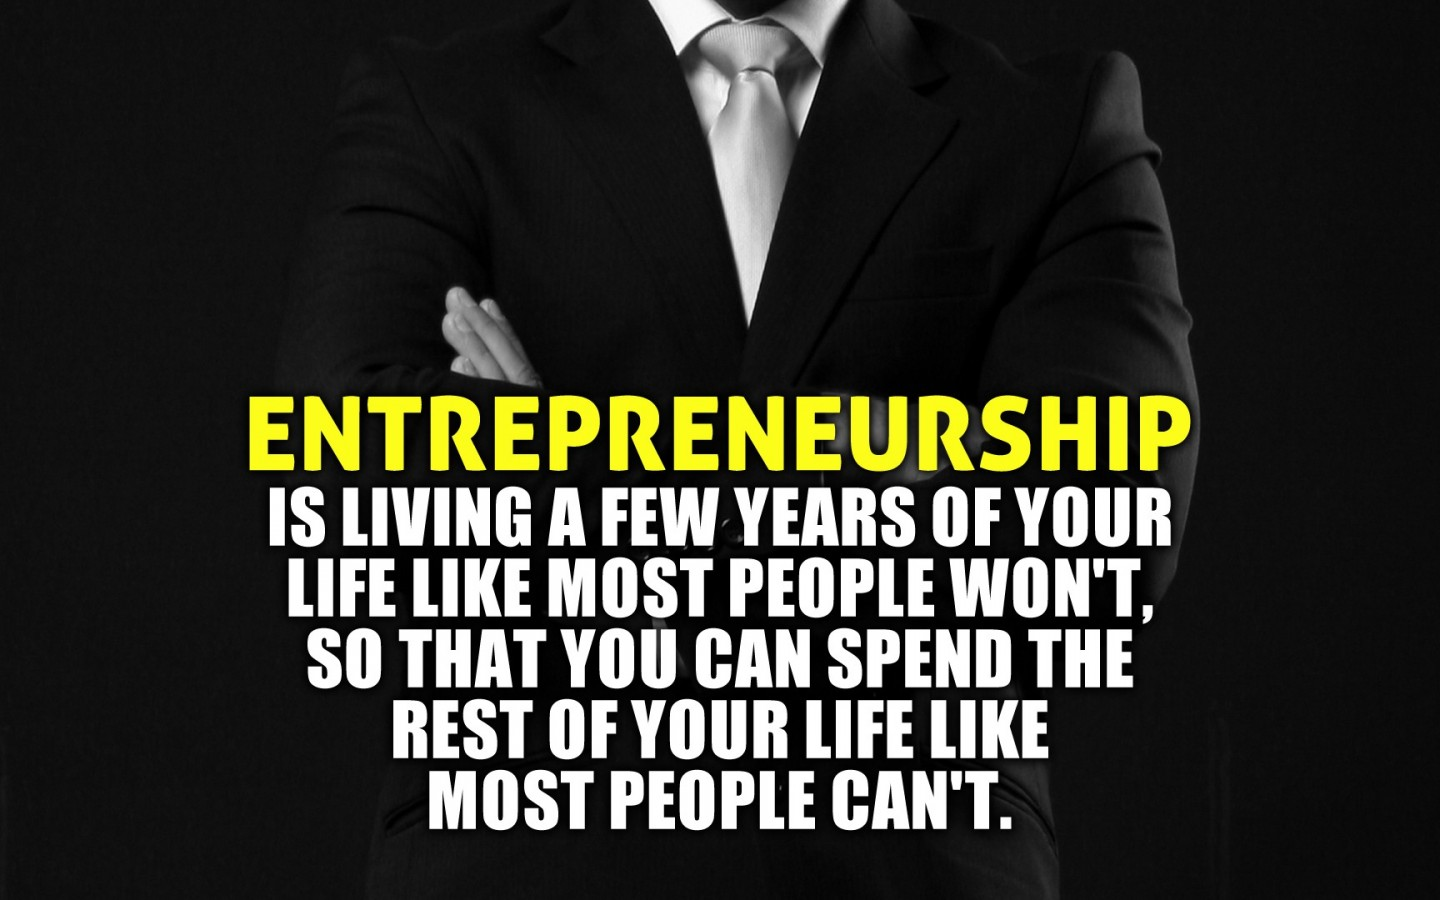 Business Quotes: Bootstrap Business: 8 Great Inspirational Entrepreneurship